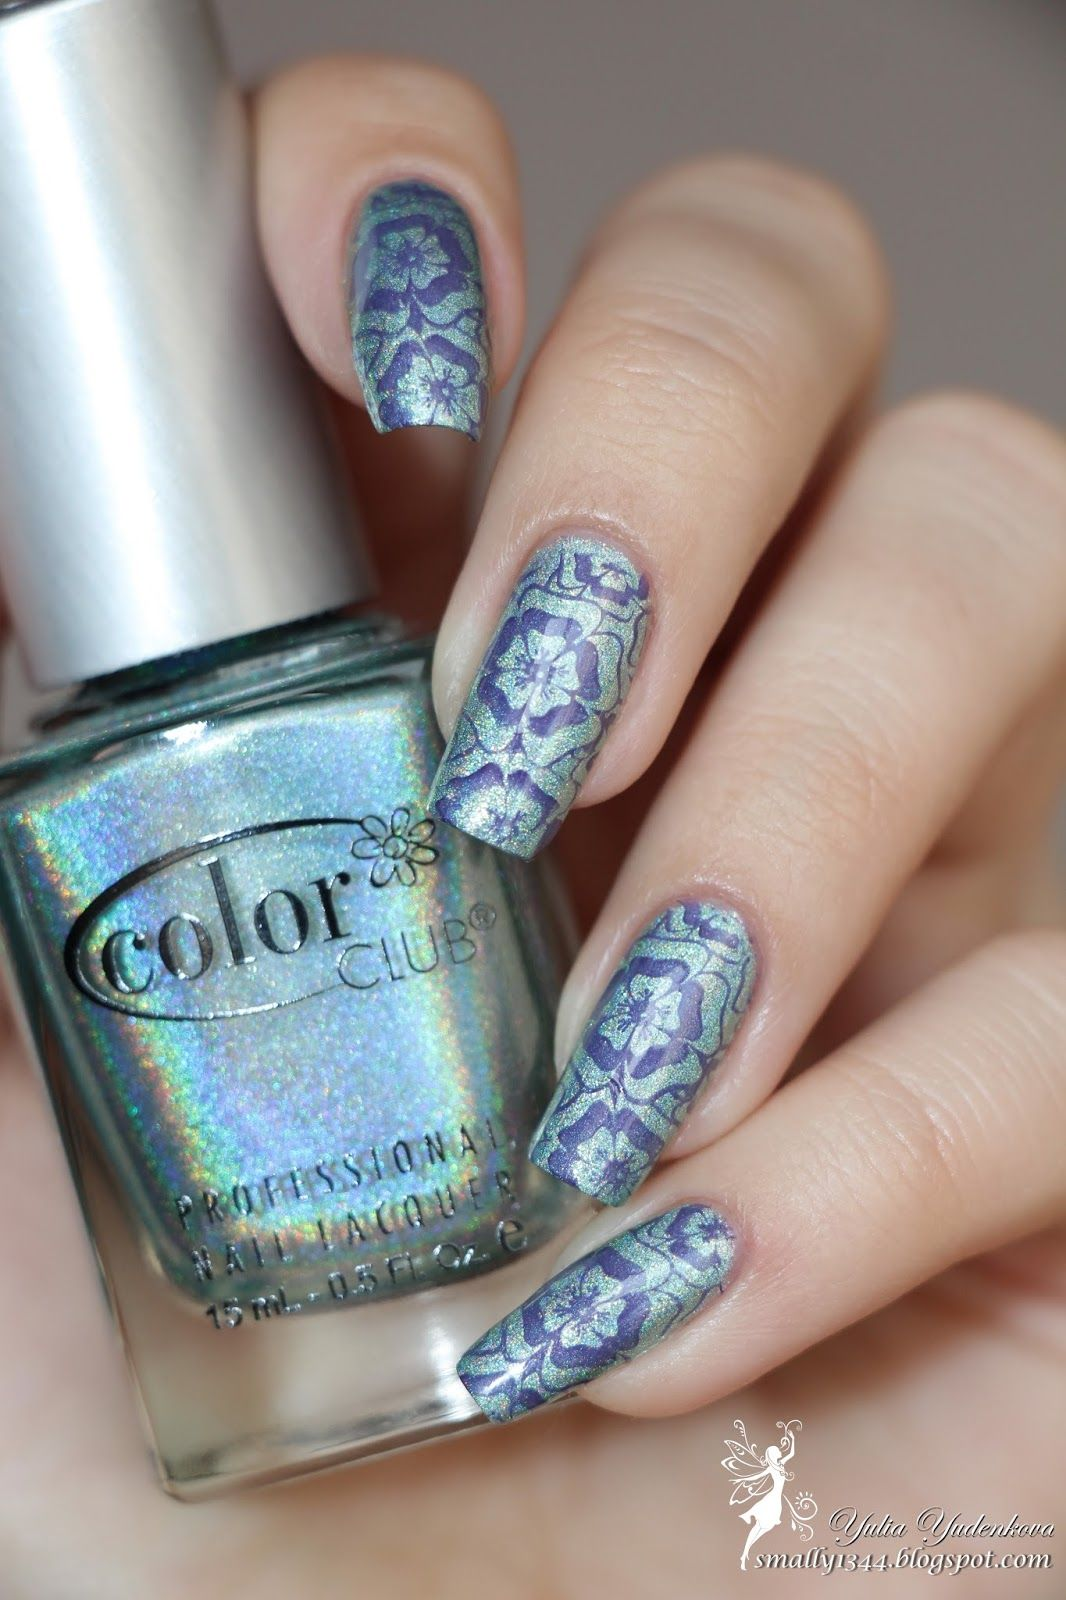 Color Club 981 Angel Kiss Stemping Lesly Ls 111